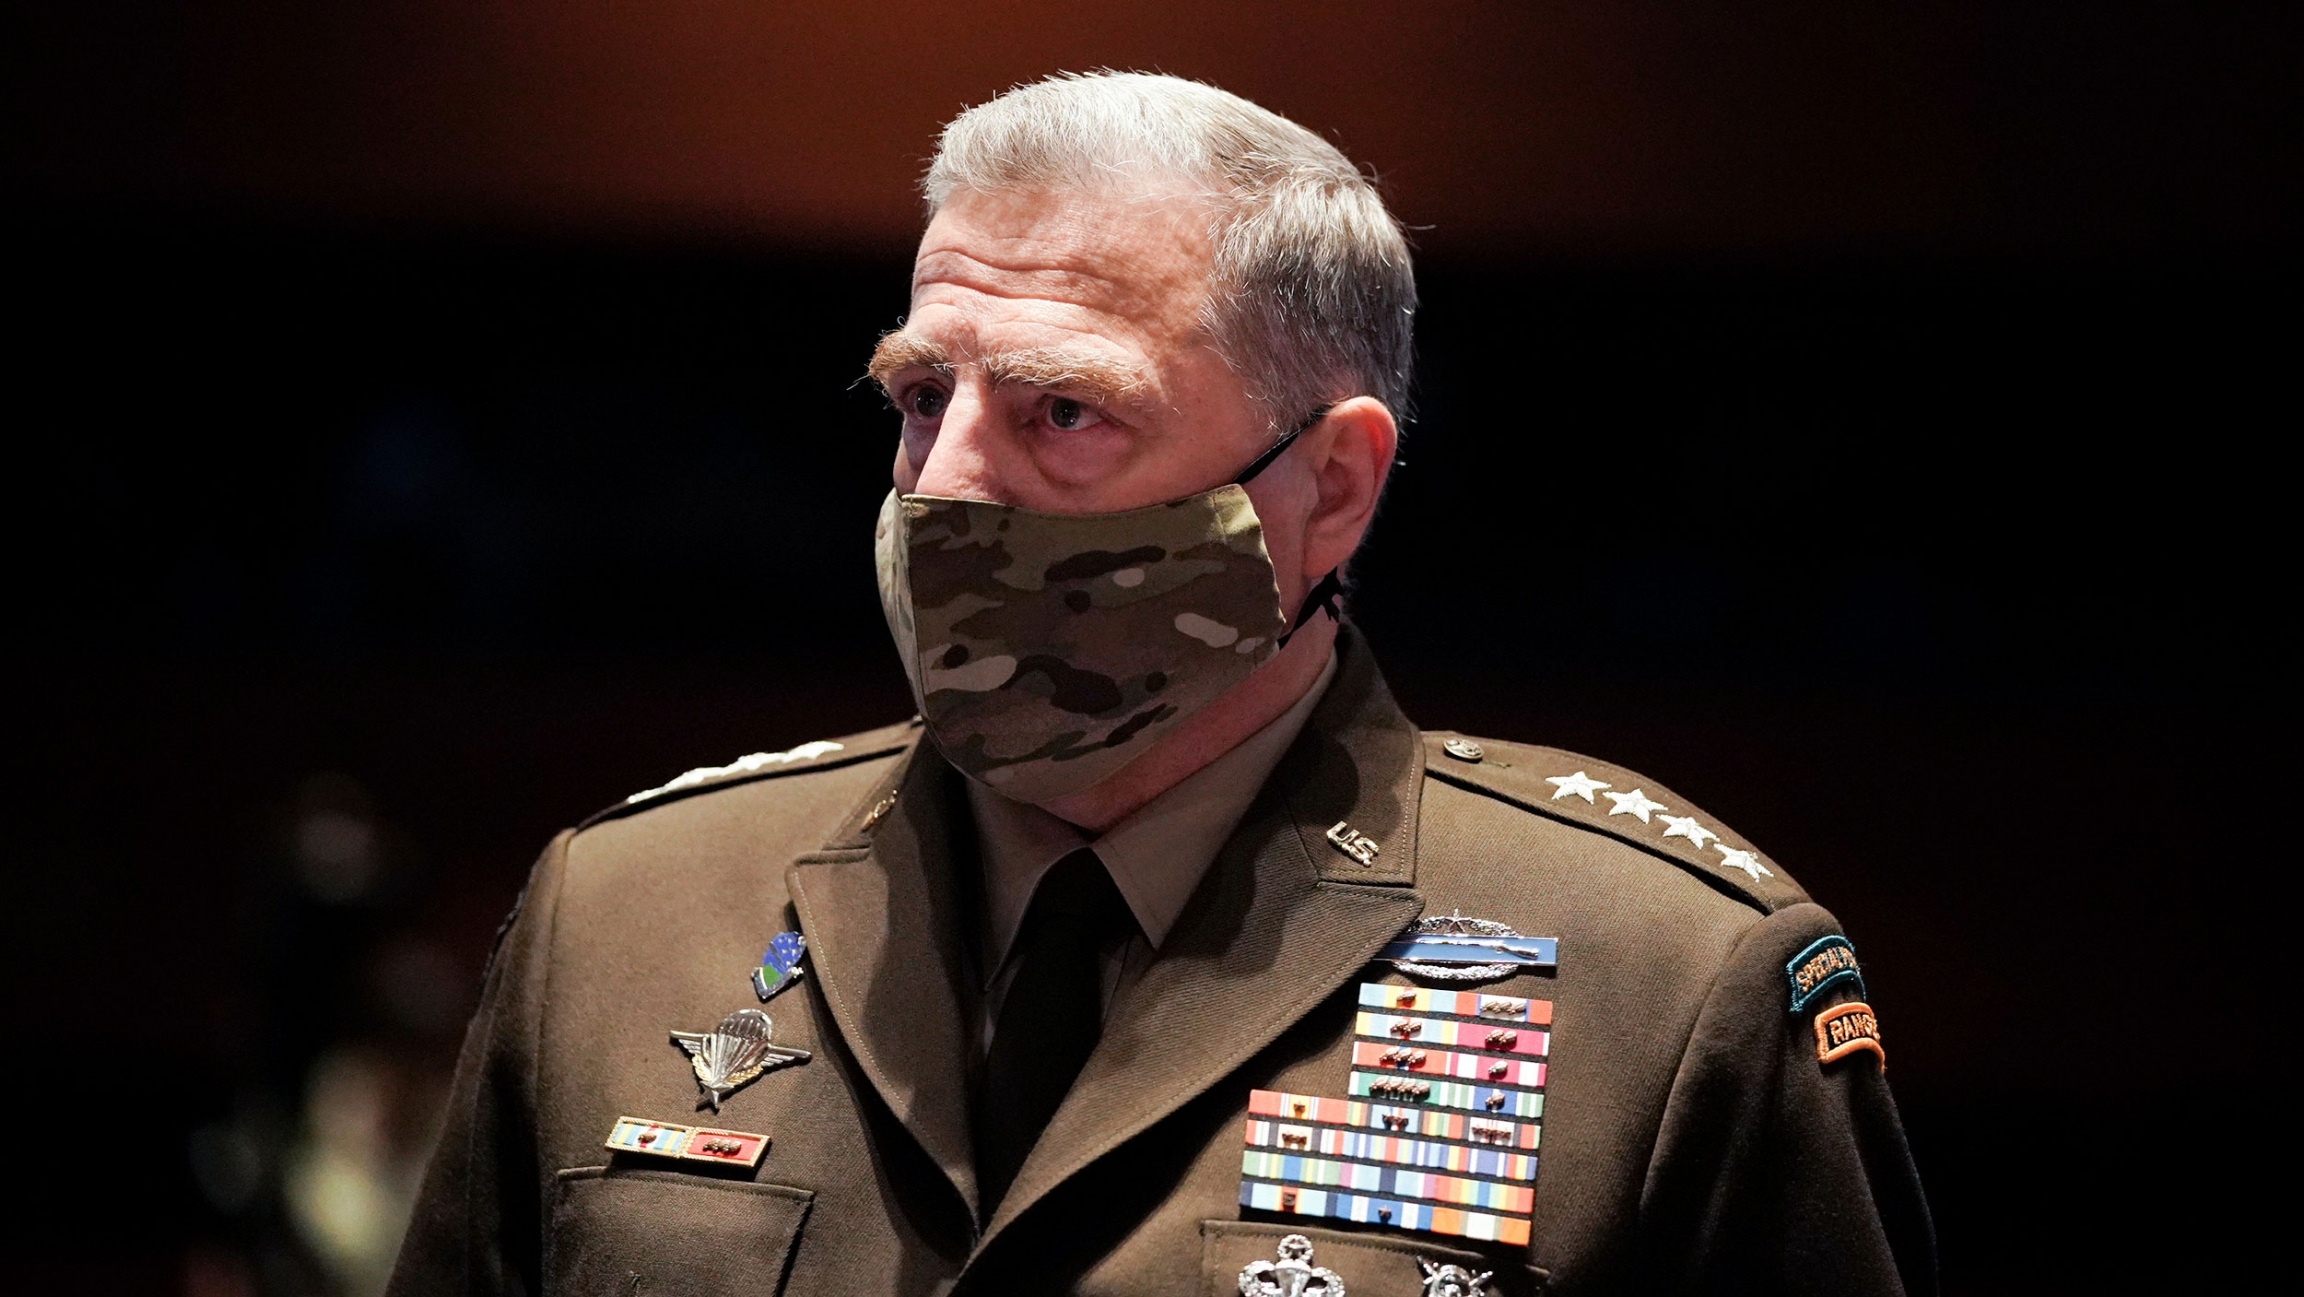 Chairman of the Joint Chiefs of Staff Gen. Mark Milley is shown wearing a camoflaged face mask and his military suit with medals across his chest.